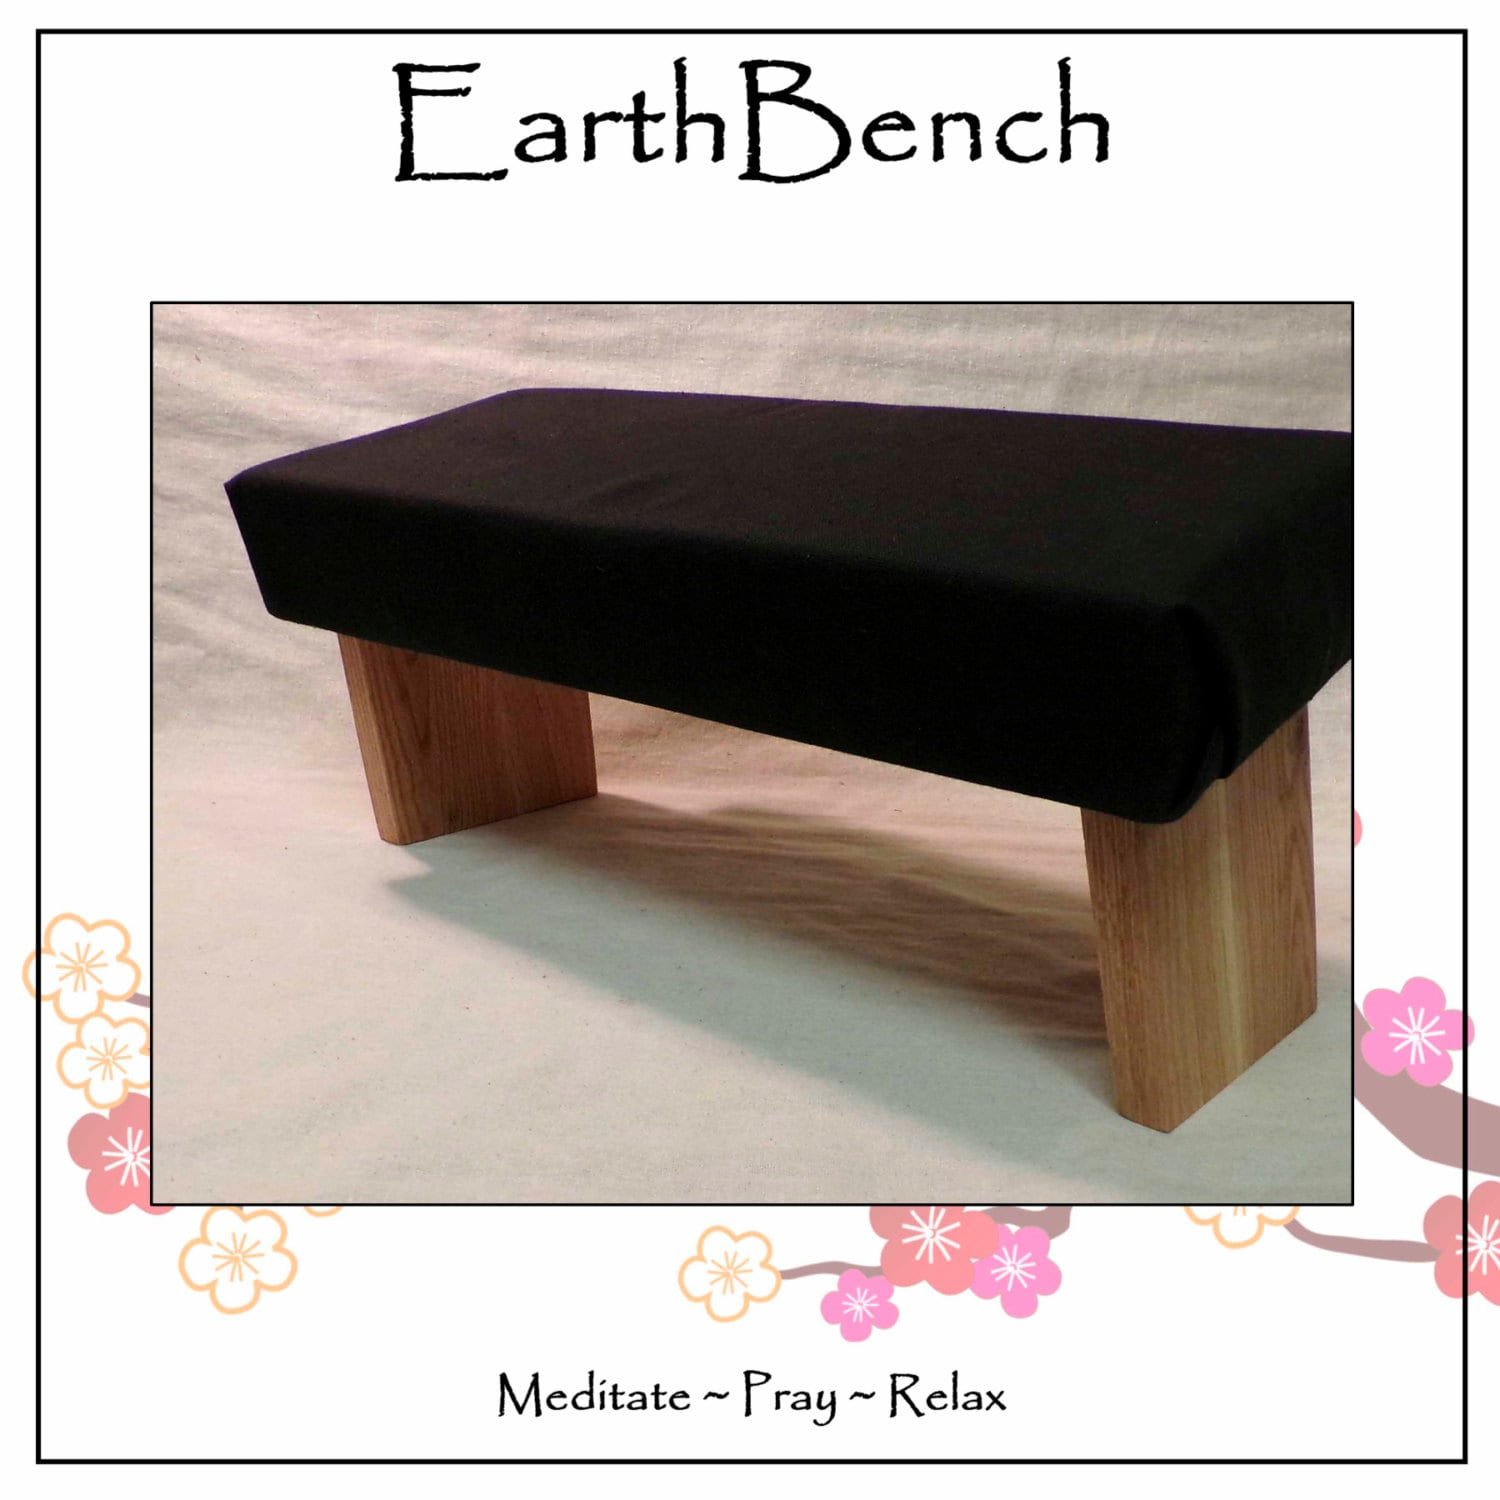 MEDITATION BENCH Padded Top With Fixed Legs By EarthBench